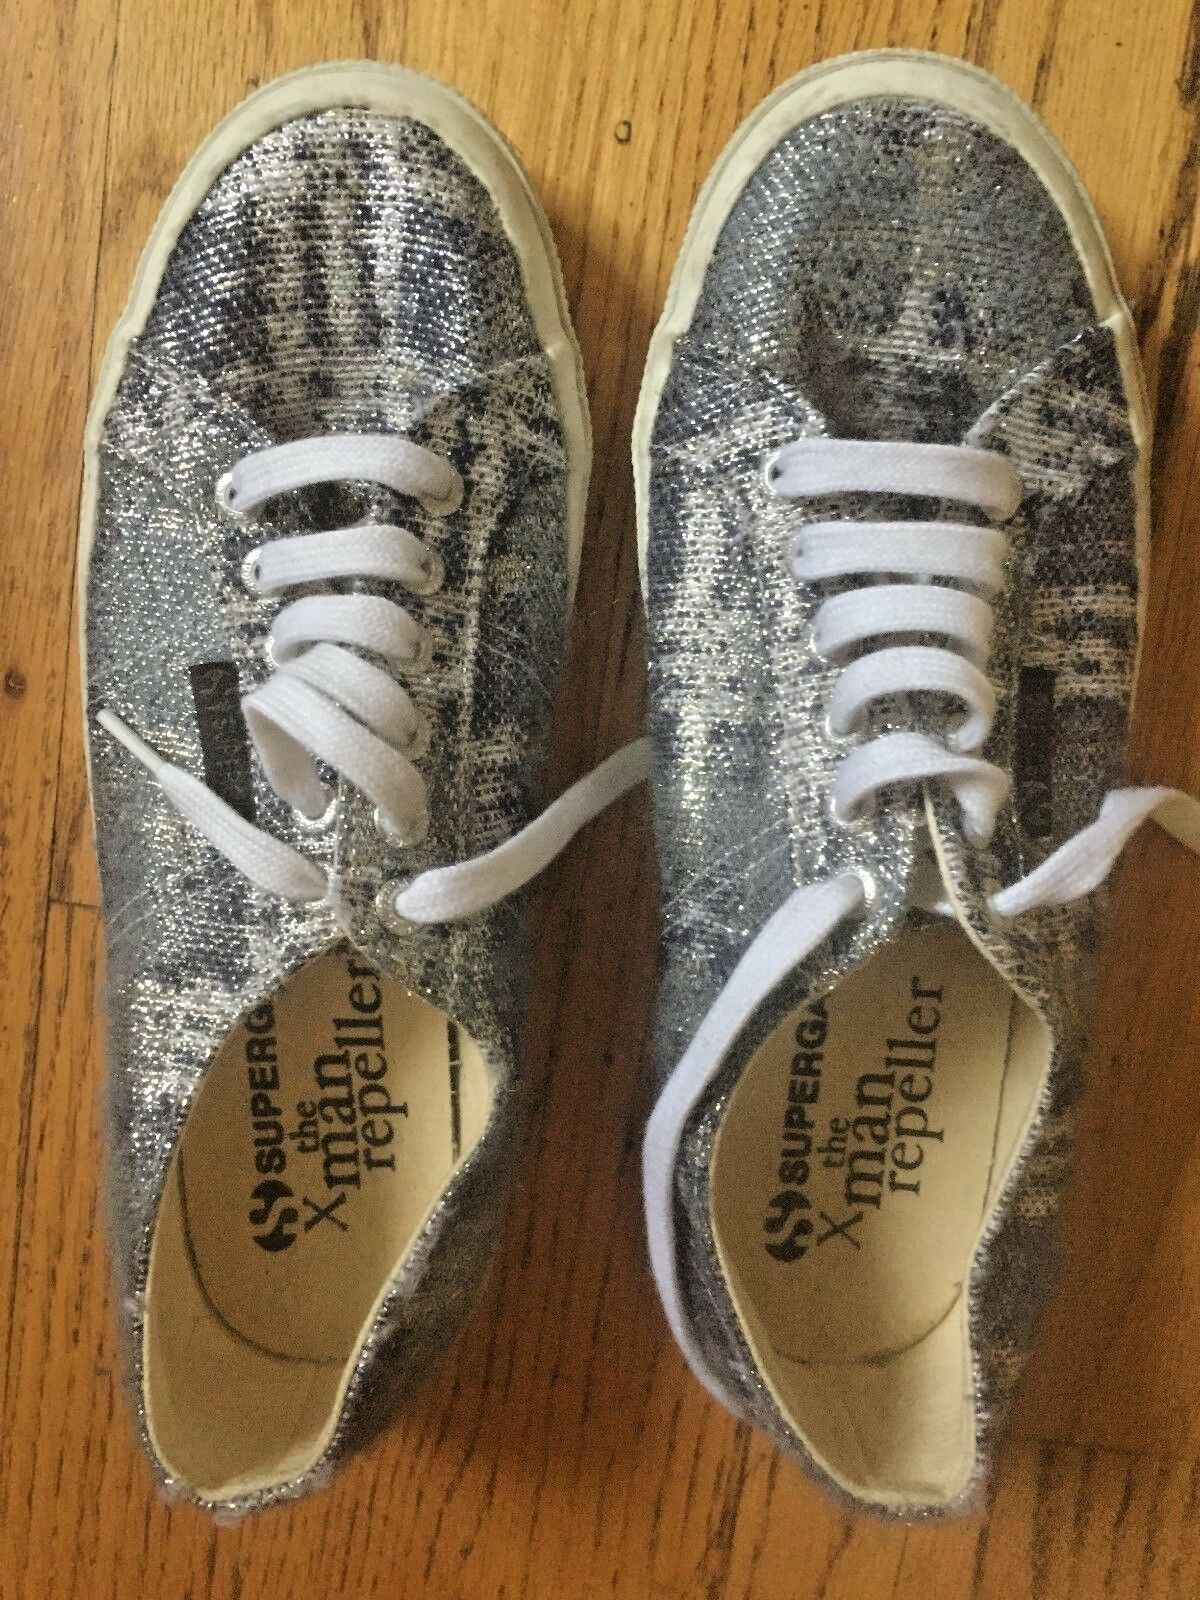 Sale Superga X Man Repeller Woman's 8 1 2 US 39 1 2 EU Lowest price Worn Once